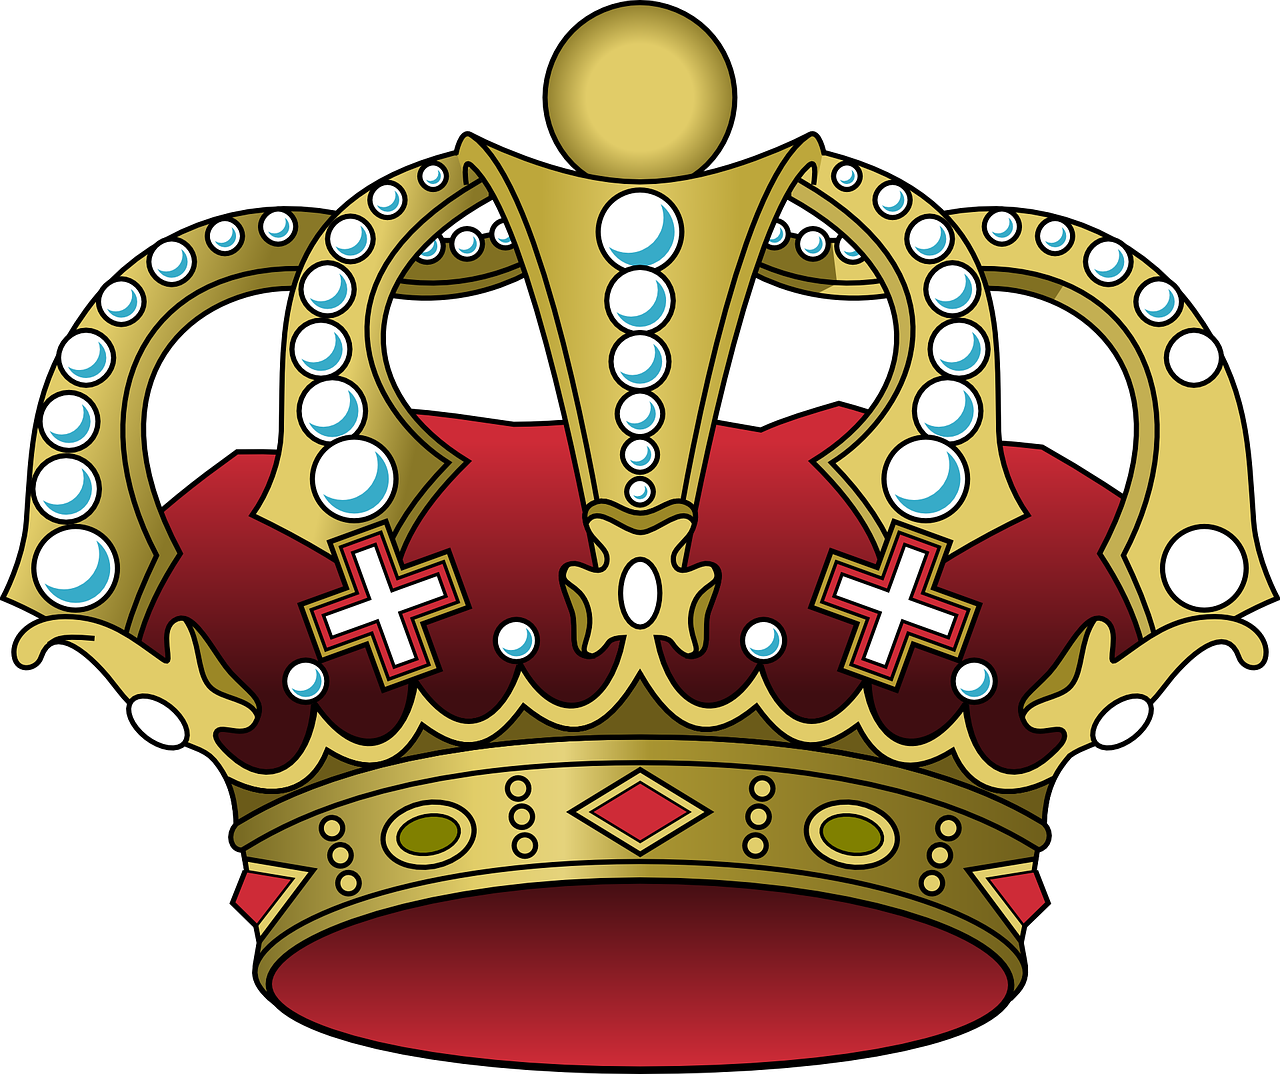 Leave the crown in. Clipart ruler three